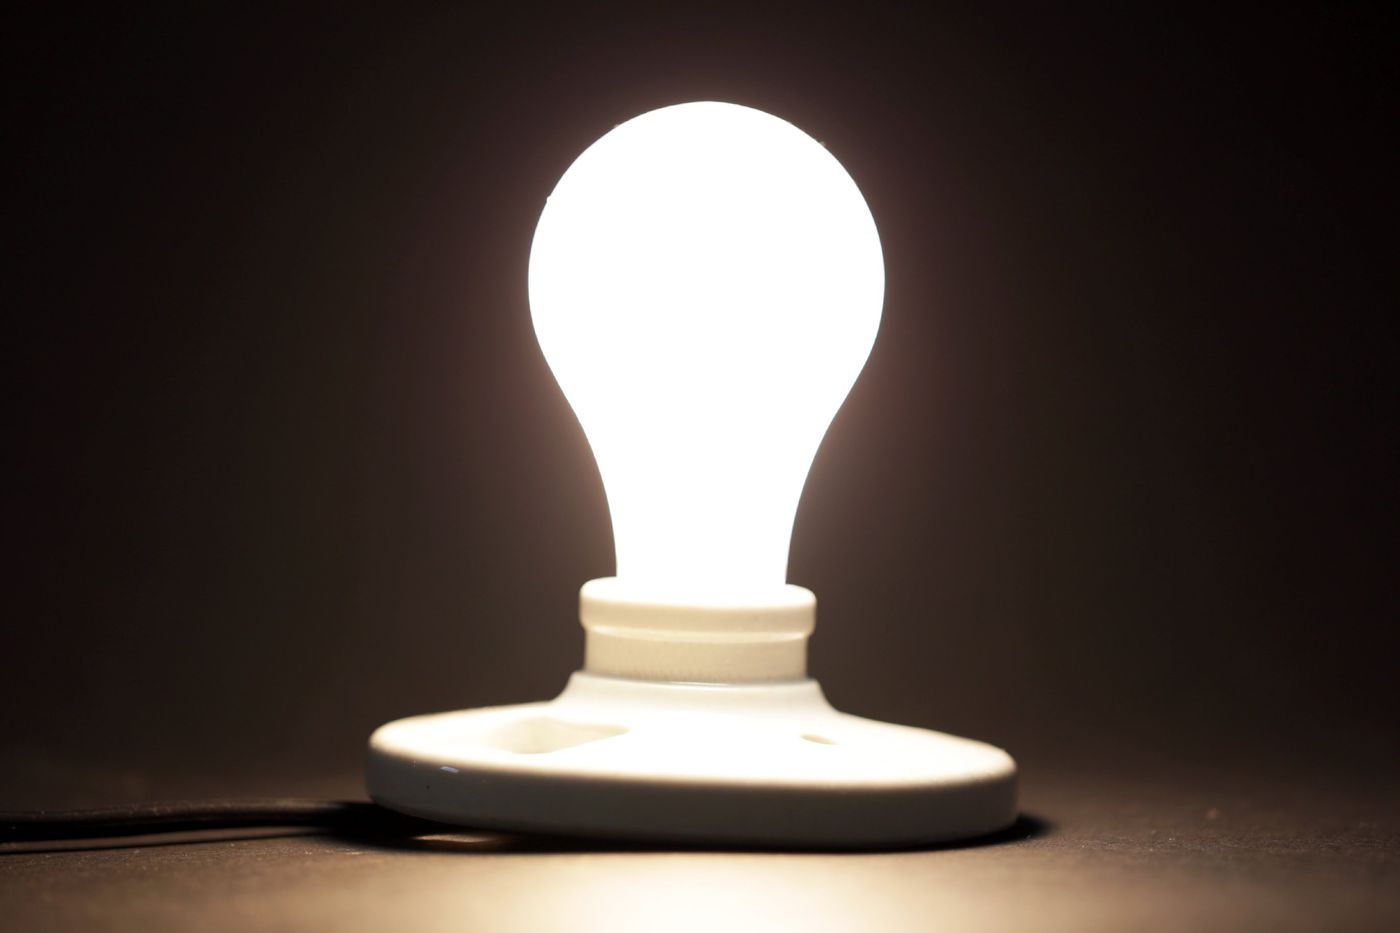 The incandescent light bulb was invented in 1879 and quickly changed the world. No longer were people reliant on natural cycles of light and dark. & Light Bulbs azcodes.com